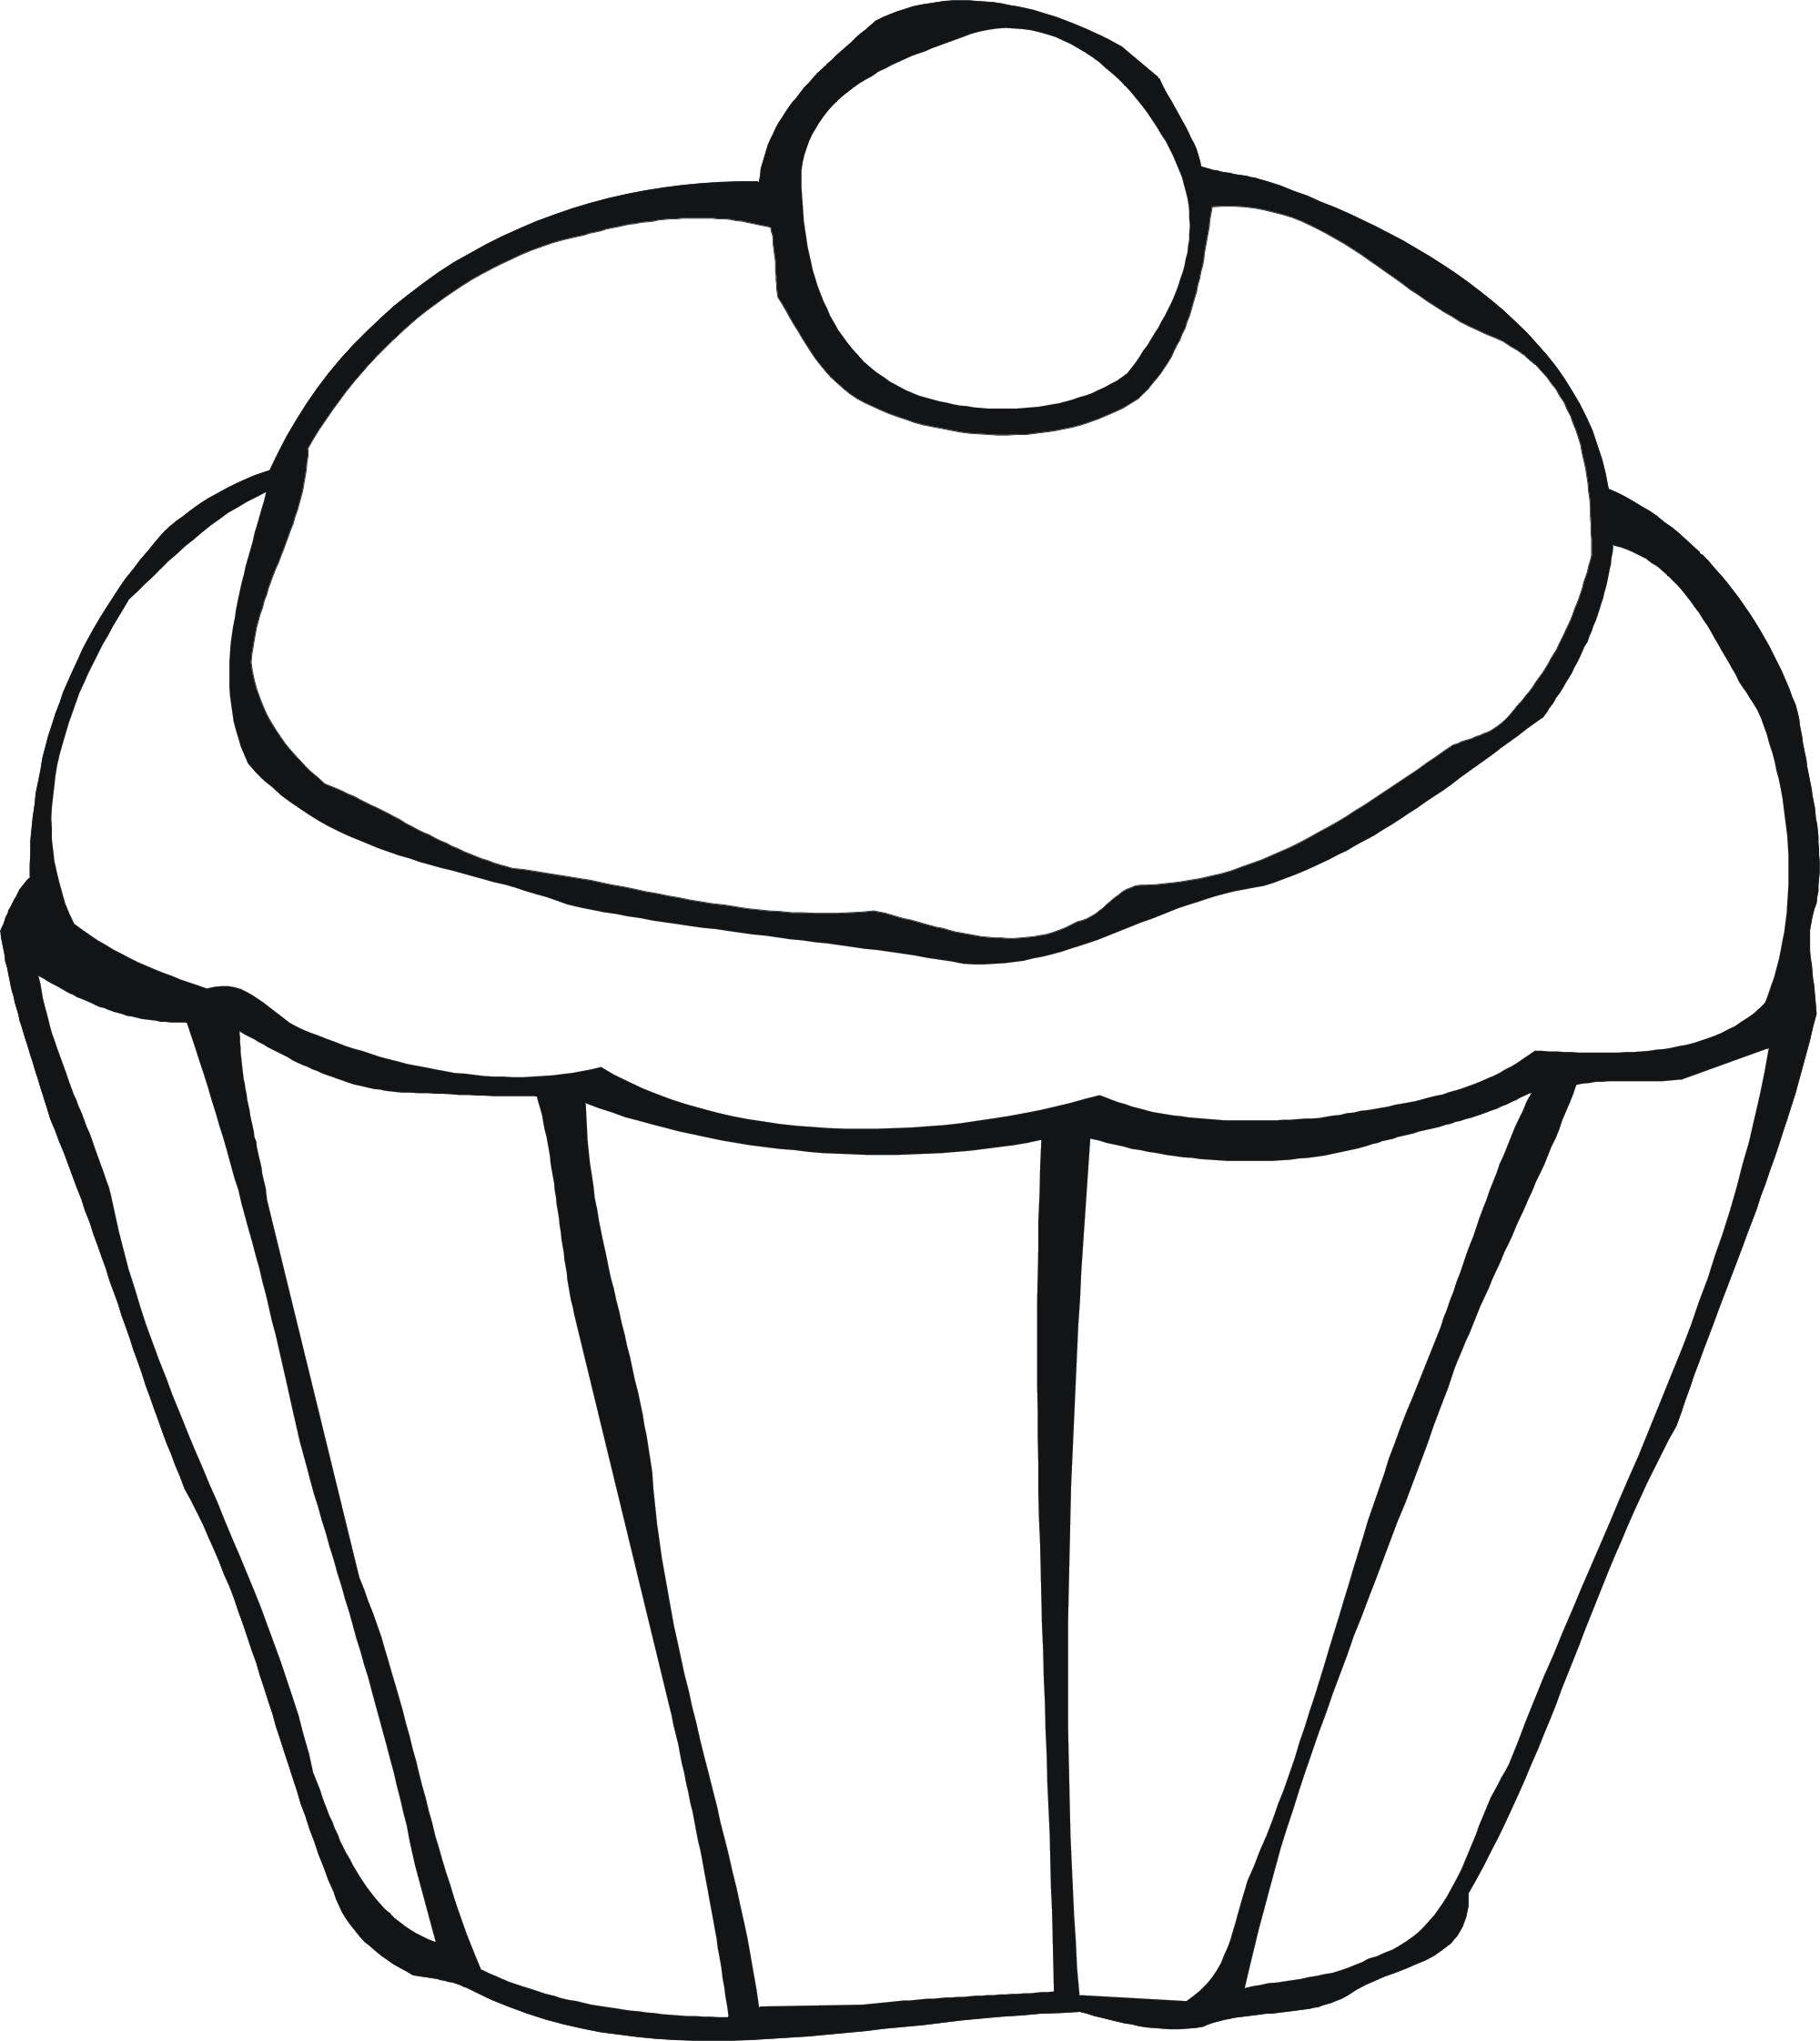 Food Coloring Pages For Kids At Getcolorings